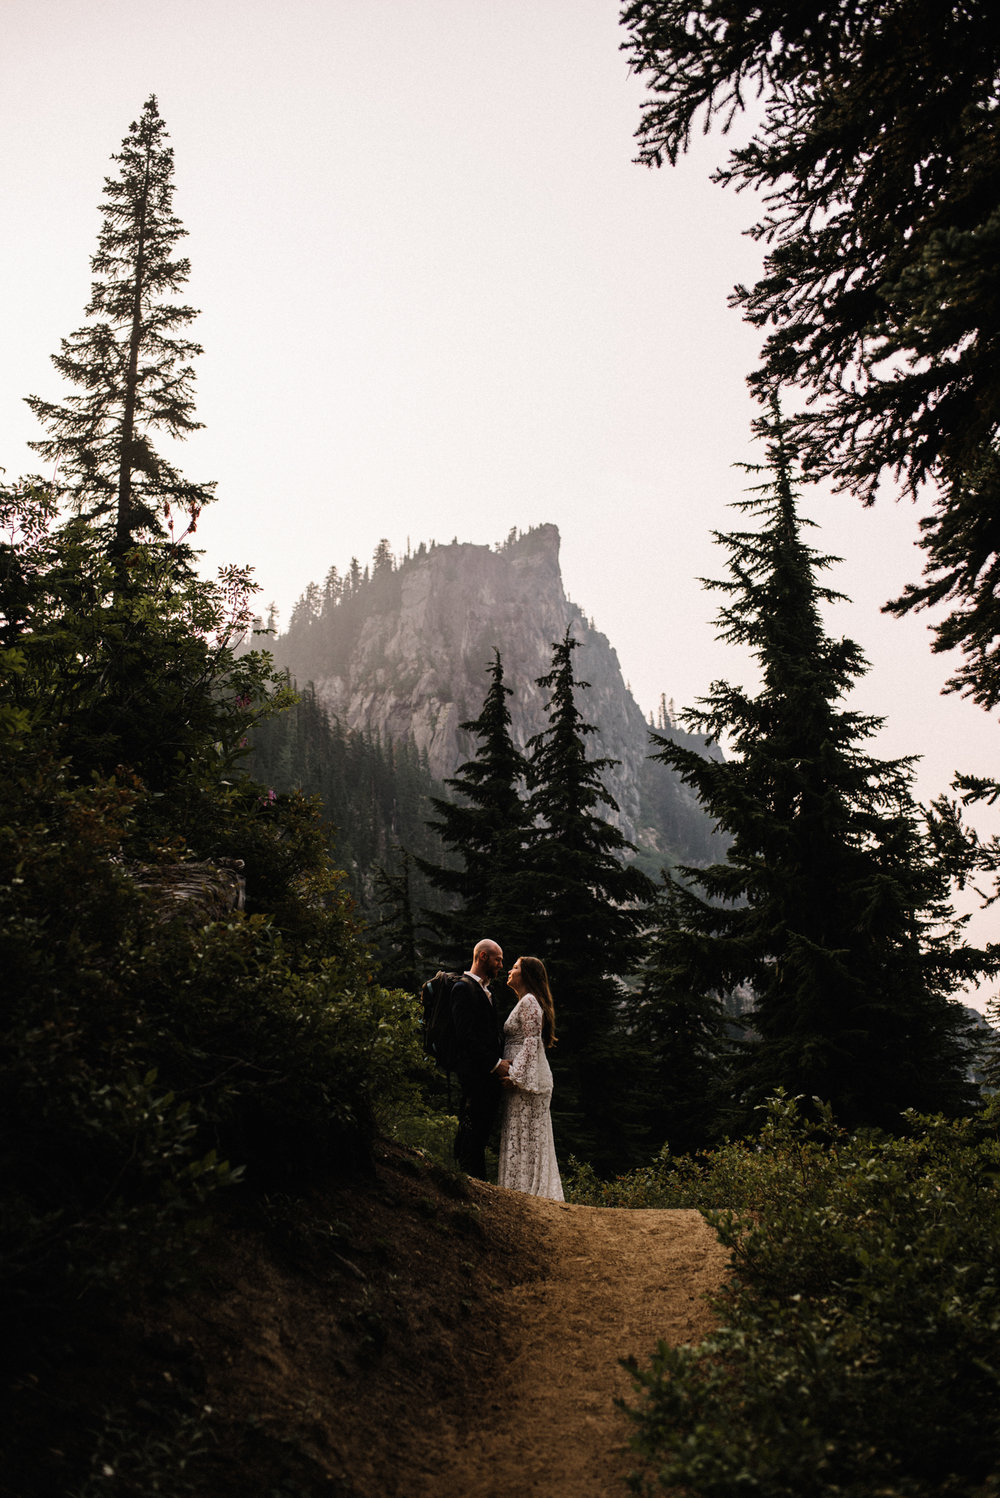 Megan and Andrew Lake Valhalla Washington PNW Adventure Elopement White Sails Creative Sunrise Hike_9.JPG